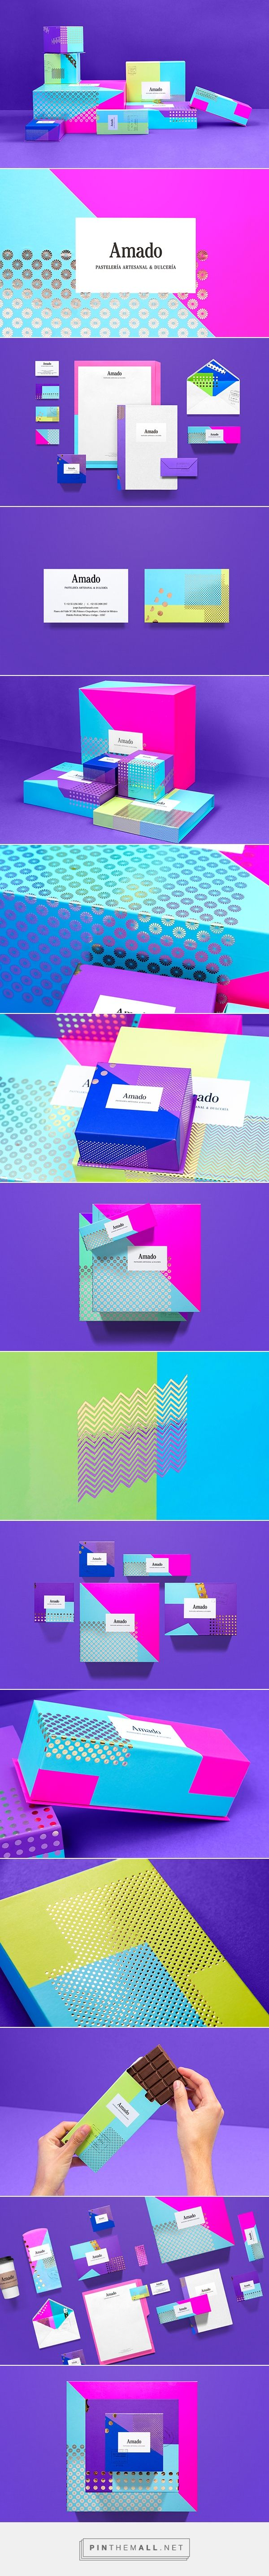 Amado by Hyatt on Behance